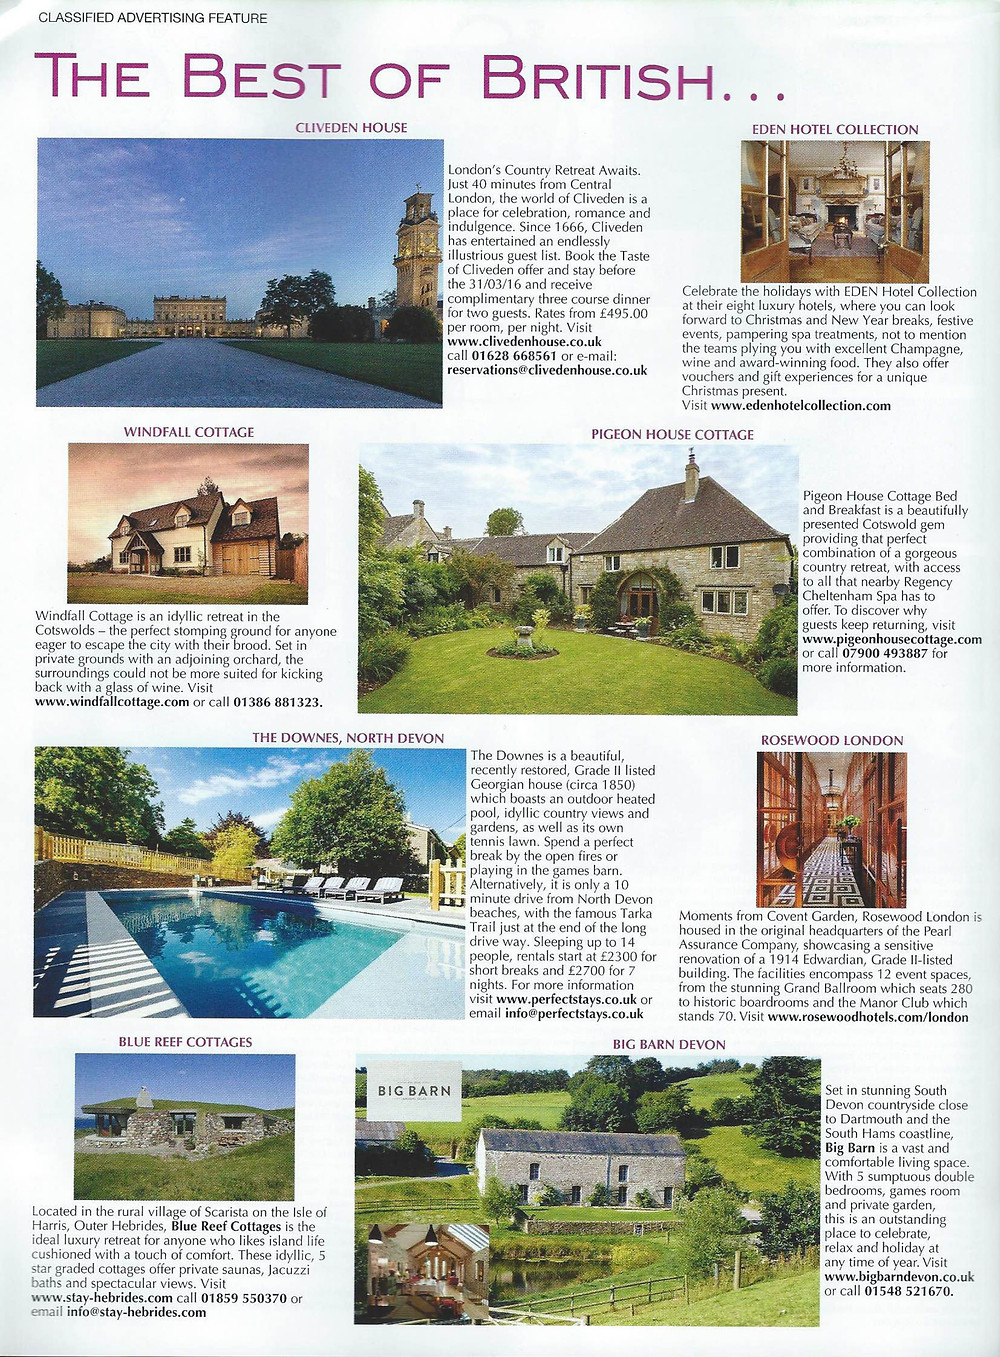 """Pigeon House Cottage is proud to have been selected by the prestigious Conde Naste Traveller magazine in their """"Best of British"""" feature."""